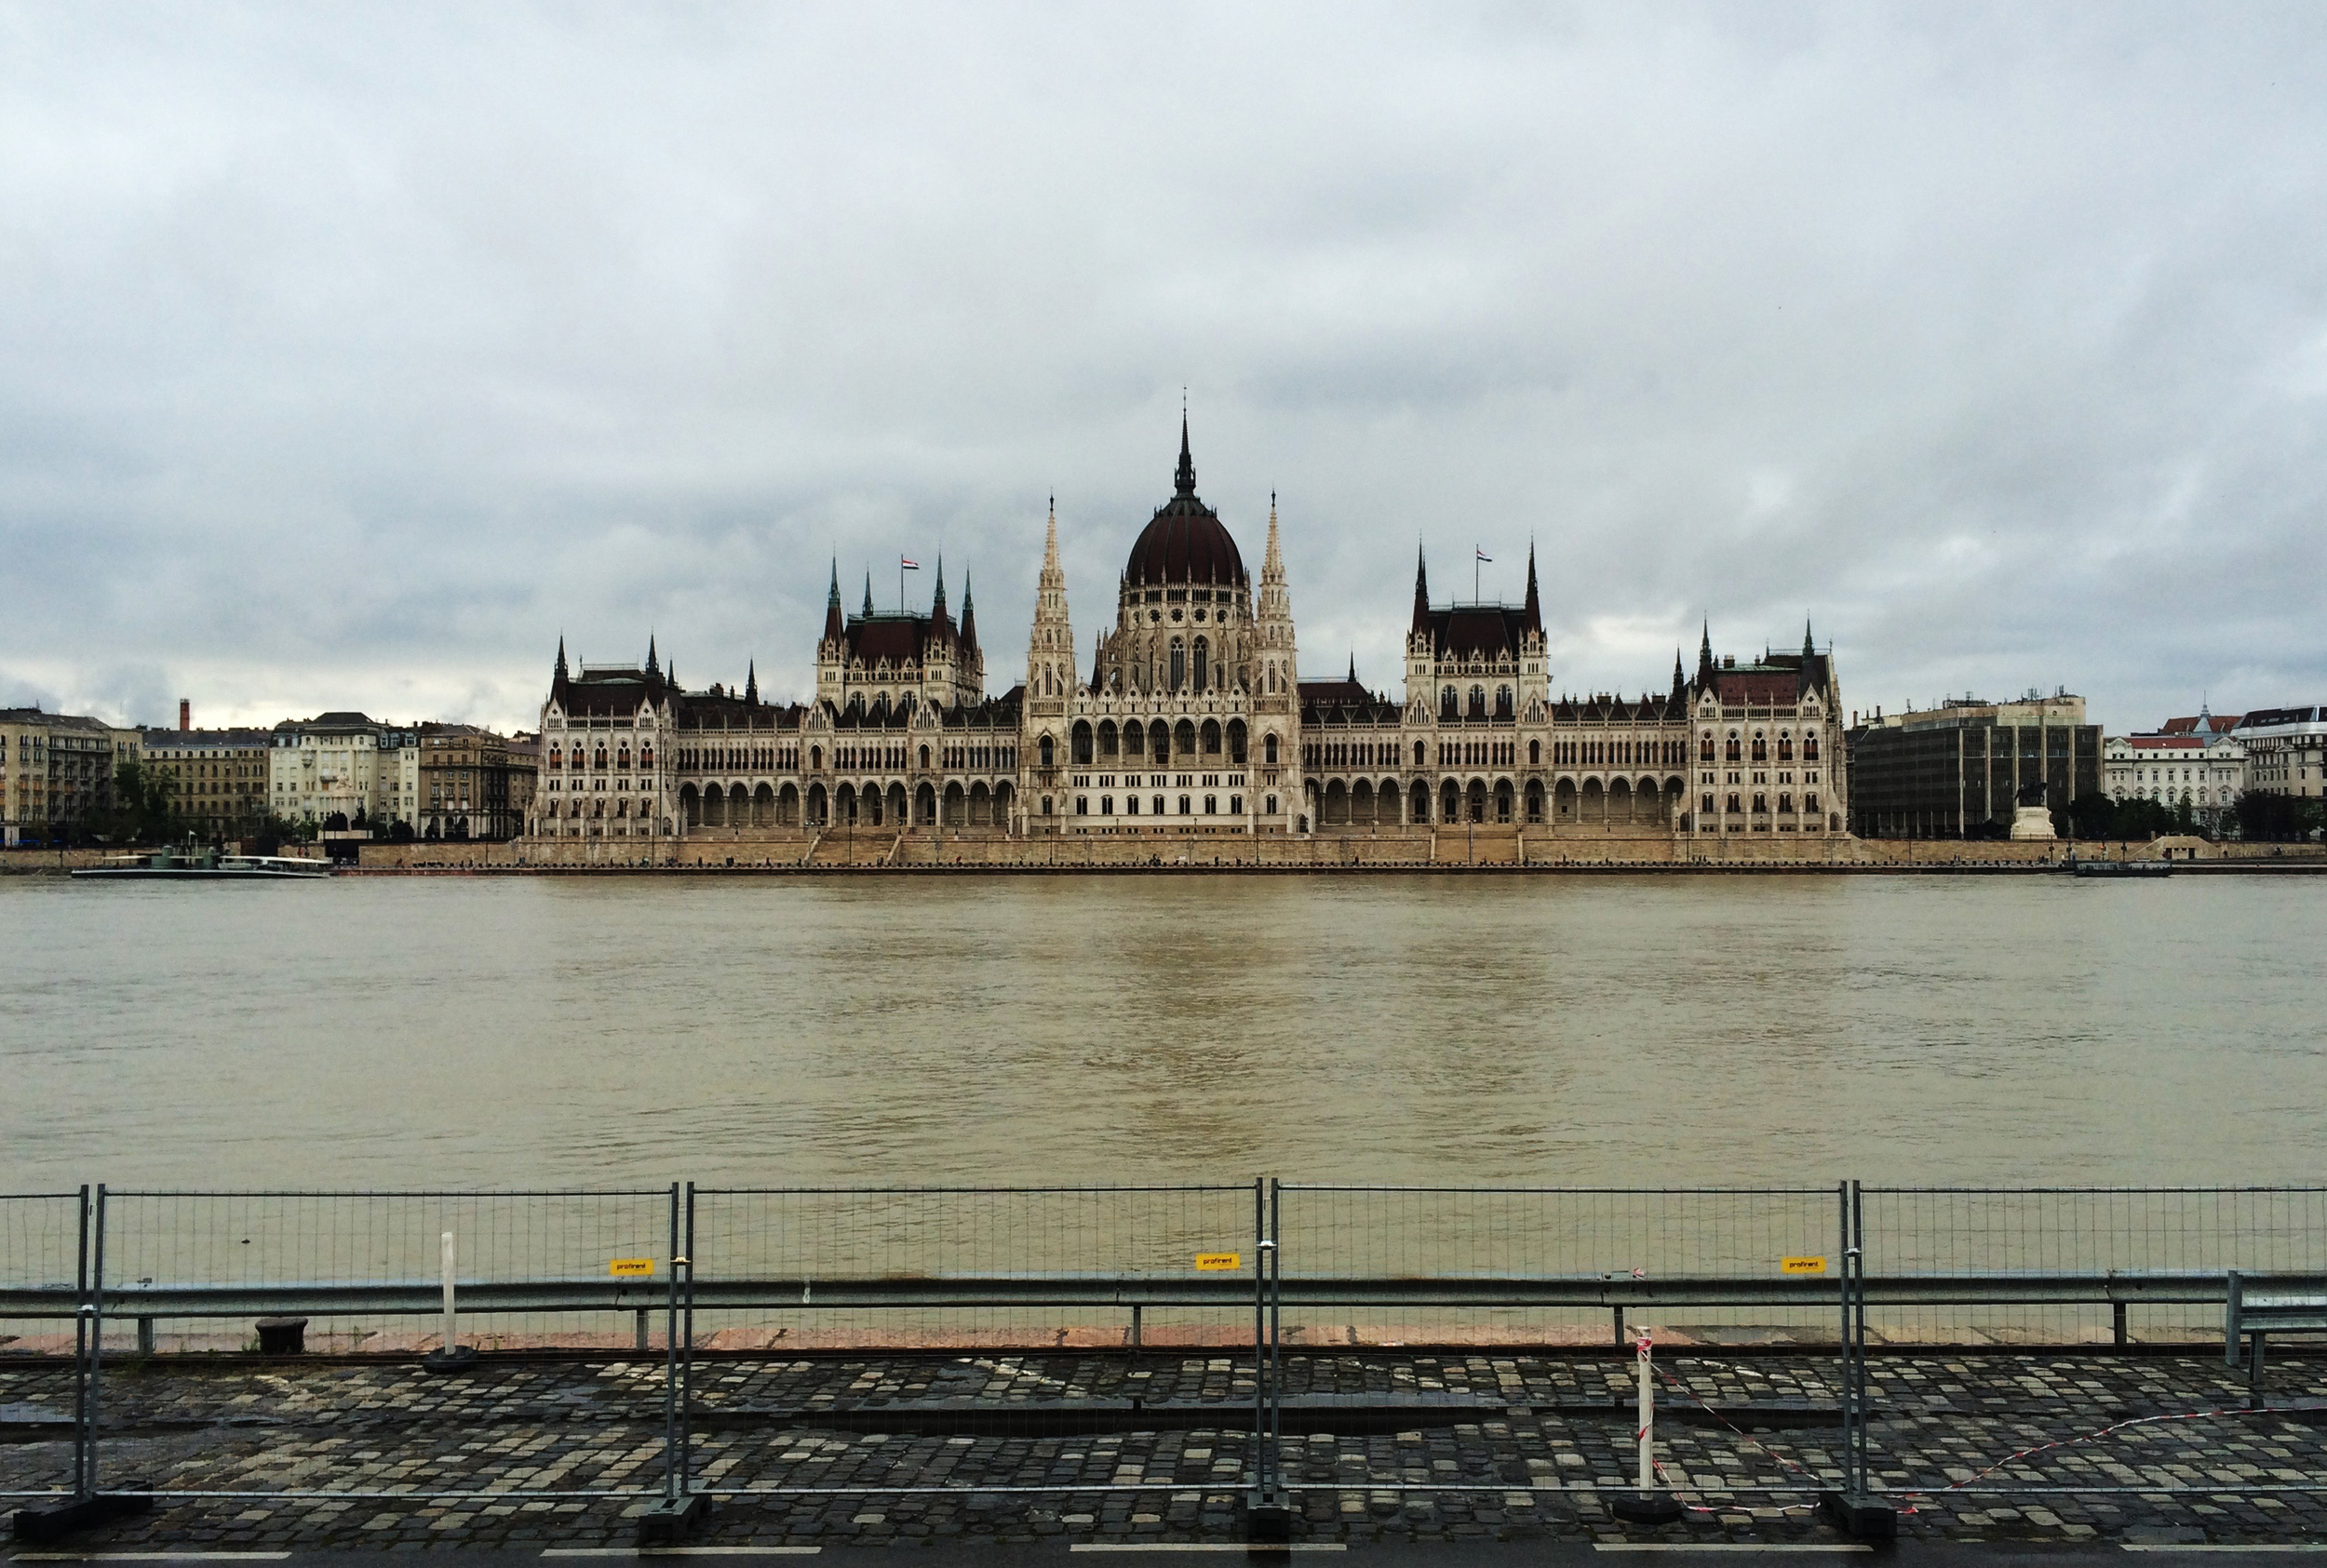 Budapest is a fun town. The Red Bull Air Race got cancelled because of really awful weather though.